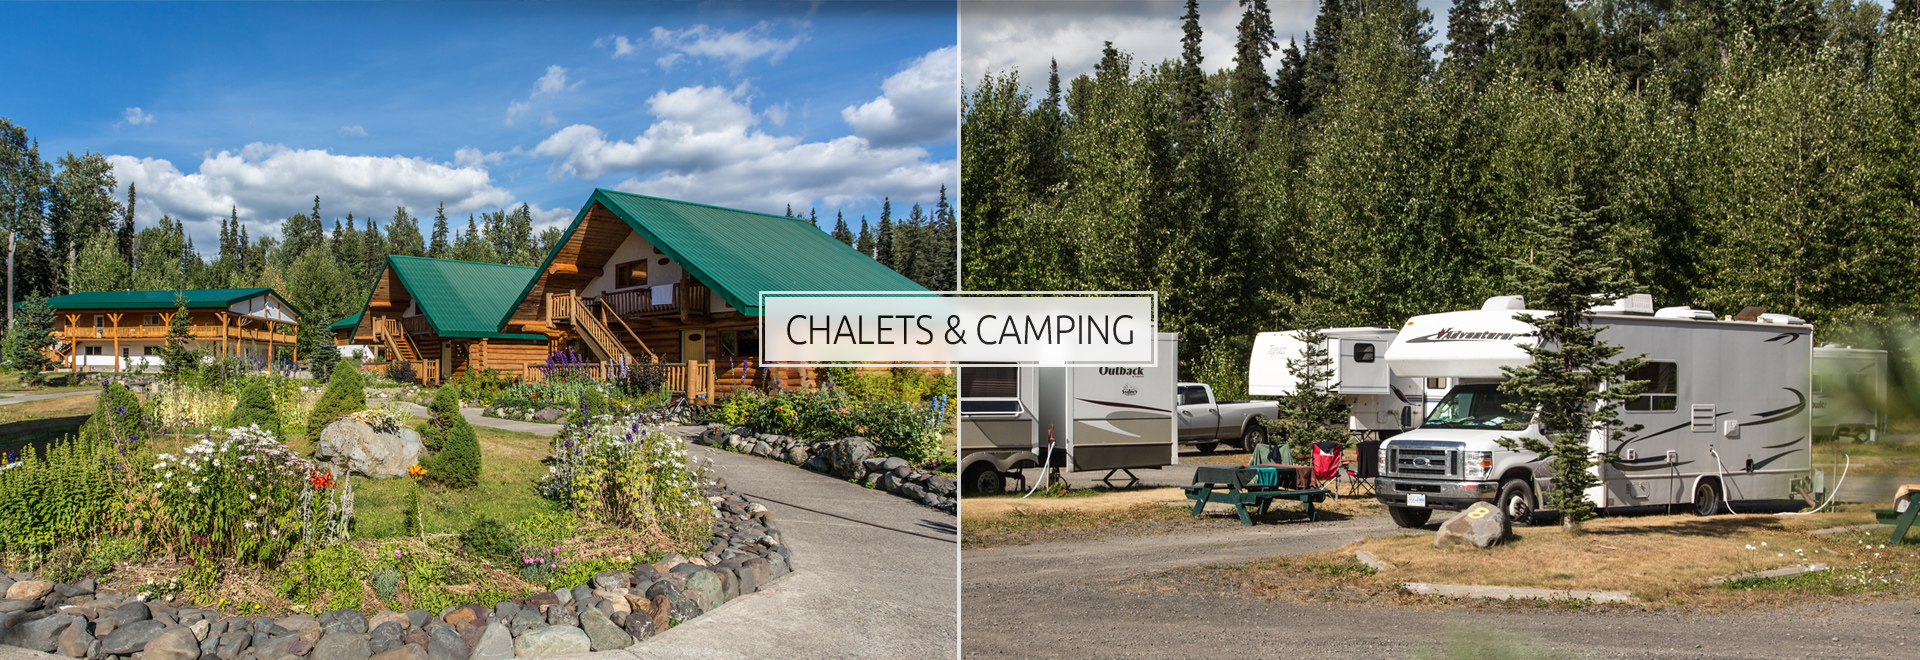 Chalets & Camping Parks at Bell 2 Lodge